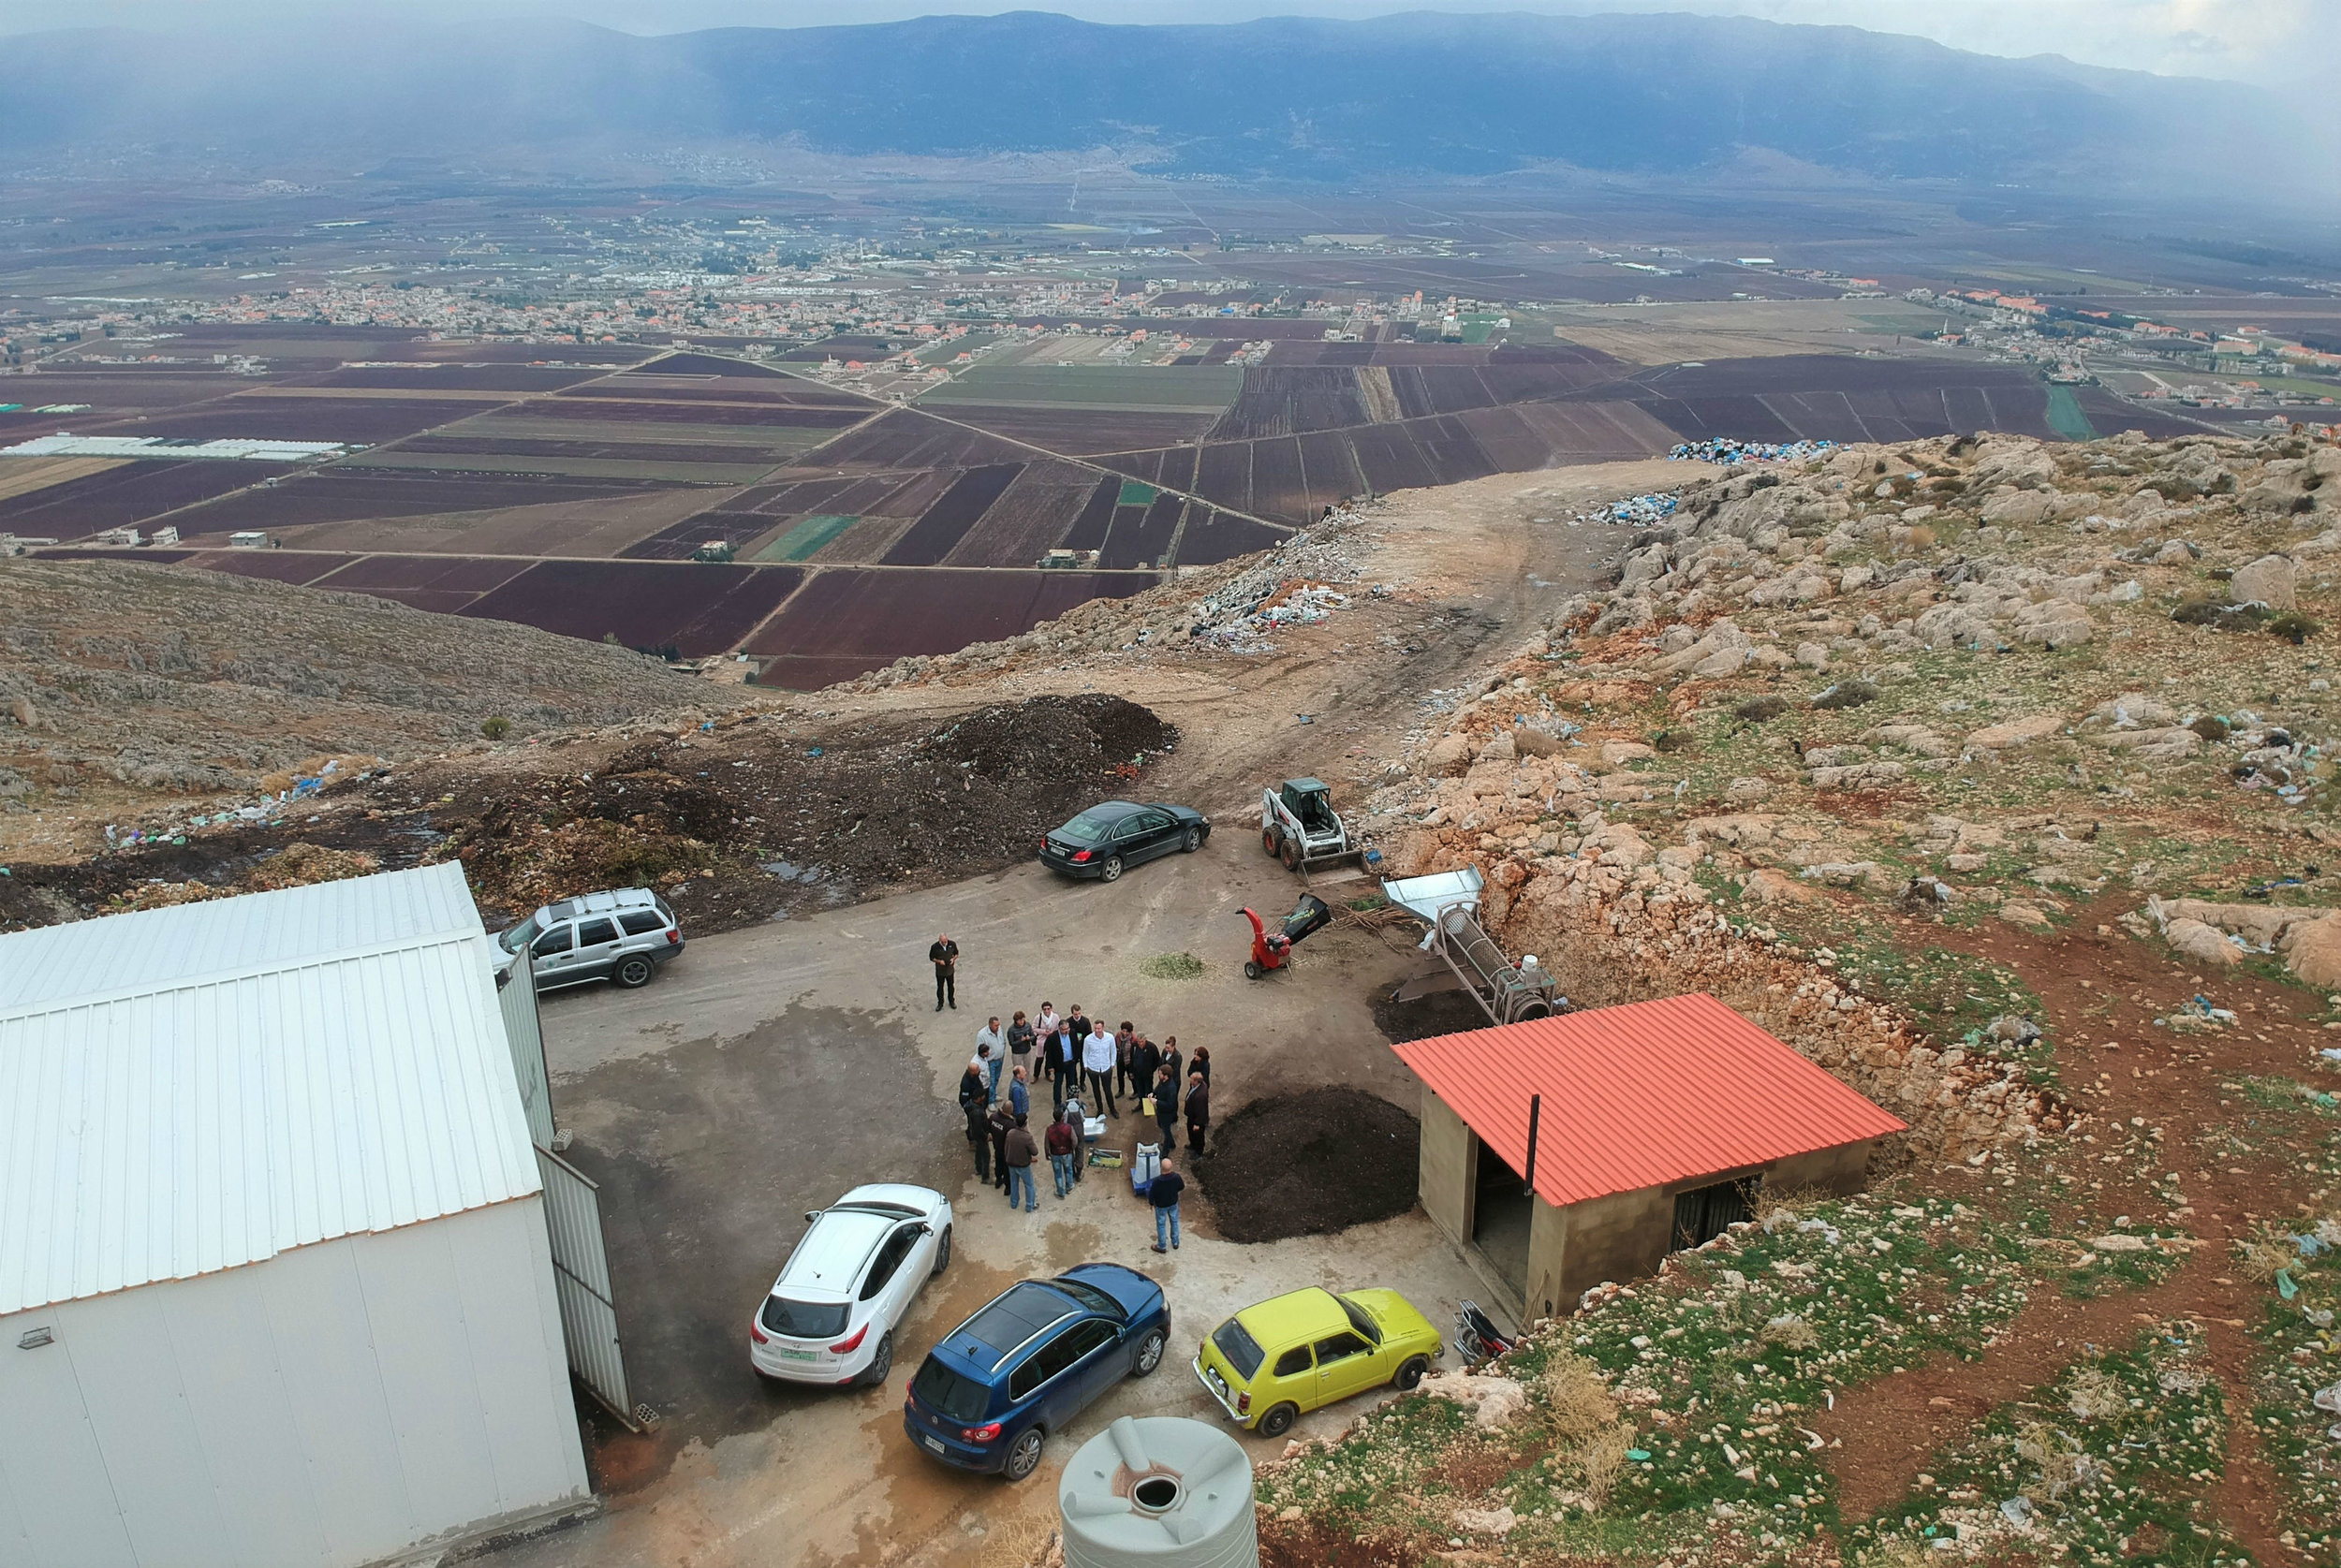 A garbage recycling facility overlooking the Beqaa Valley